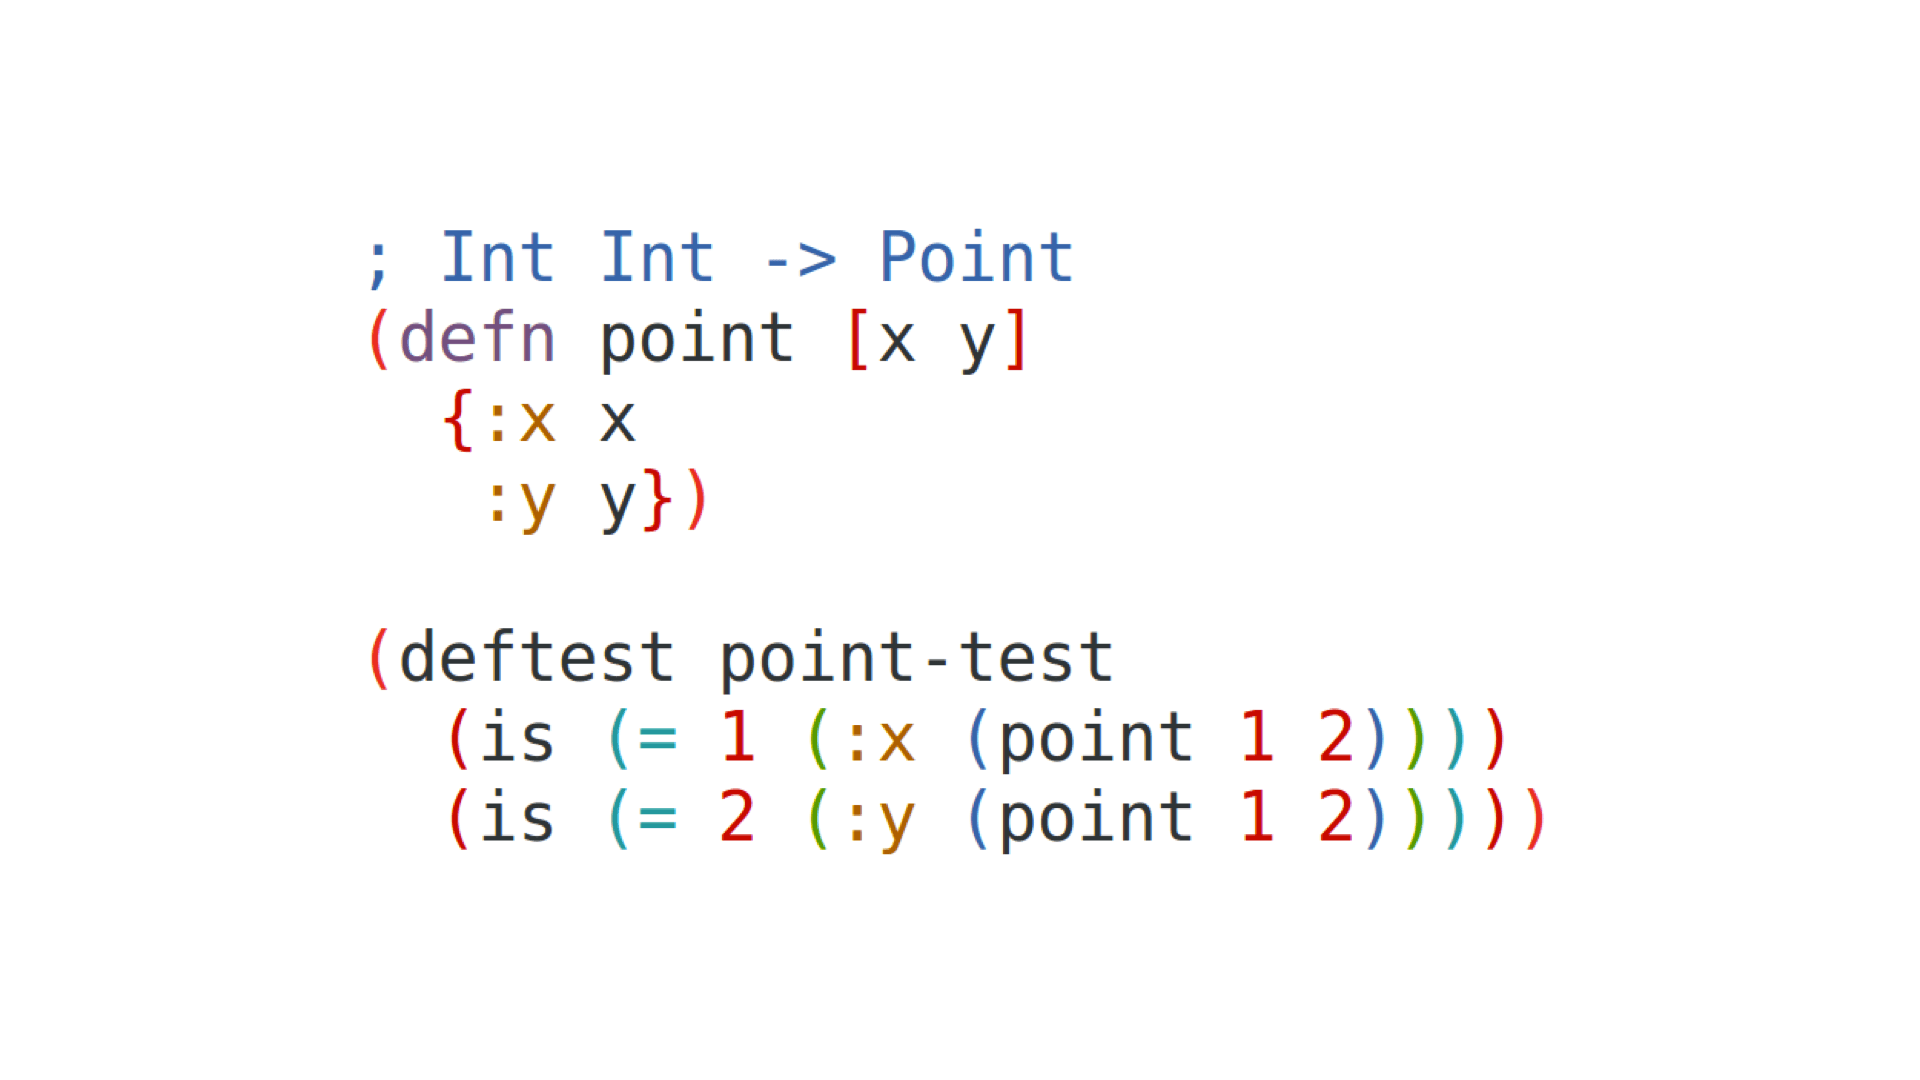 Definition of point with tests